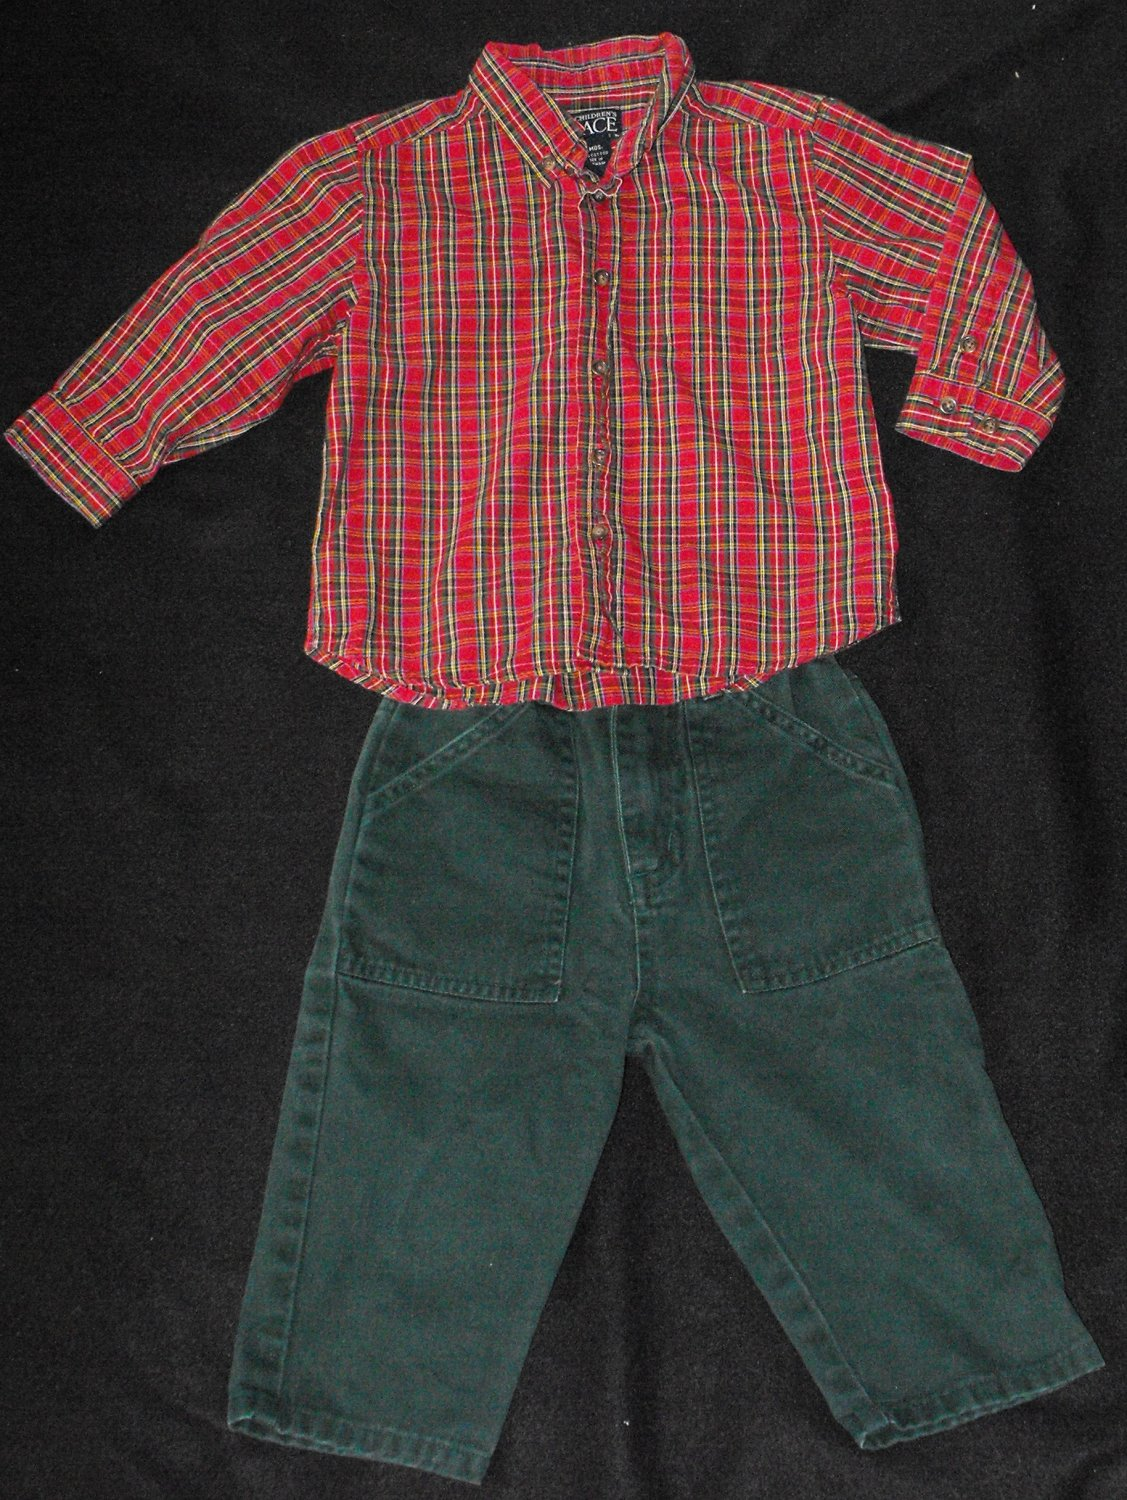 The Children's Place TCP 18 Months Boys Outfit